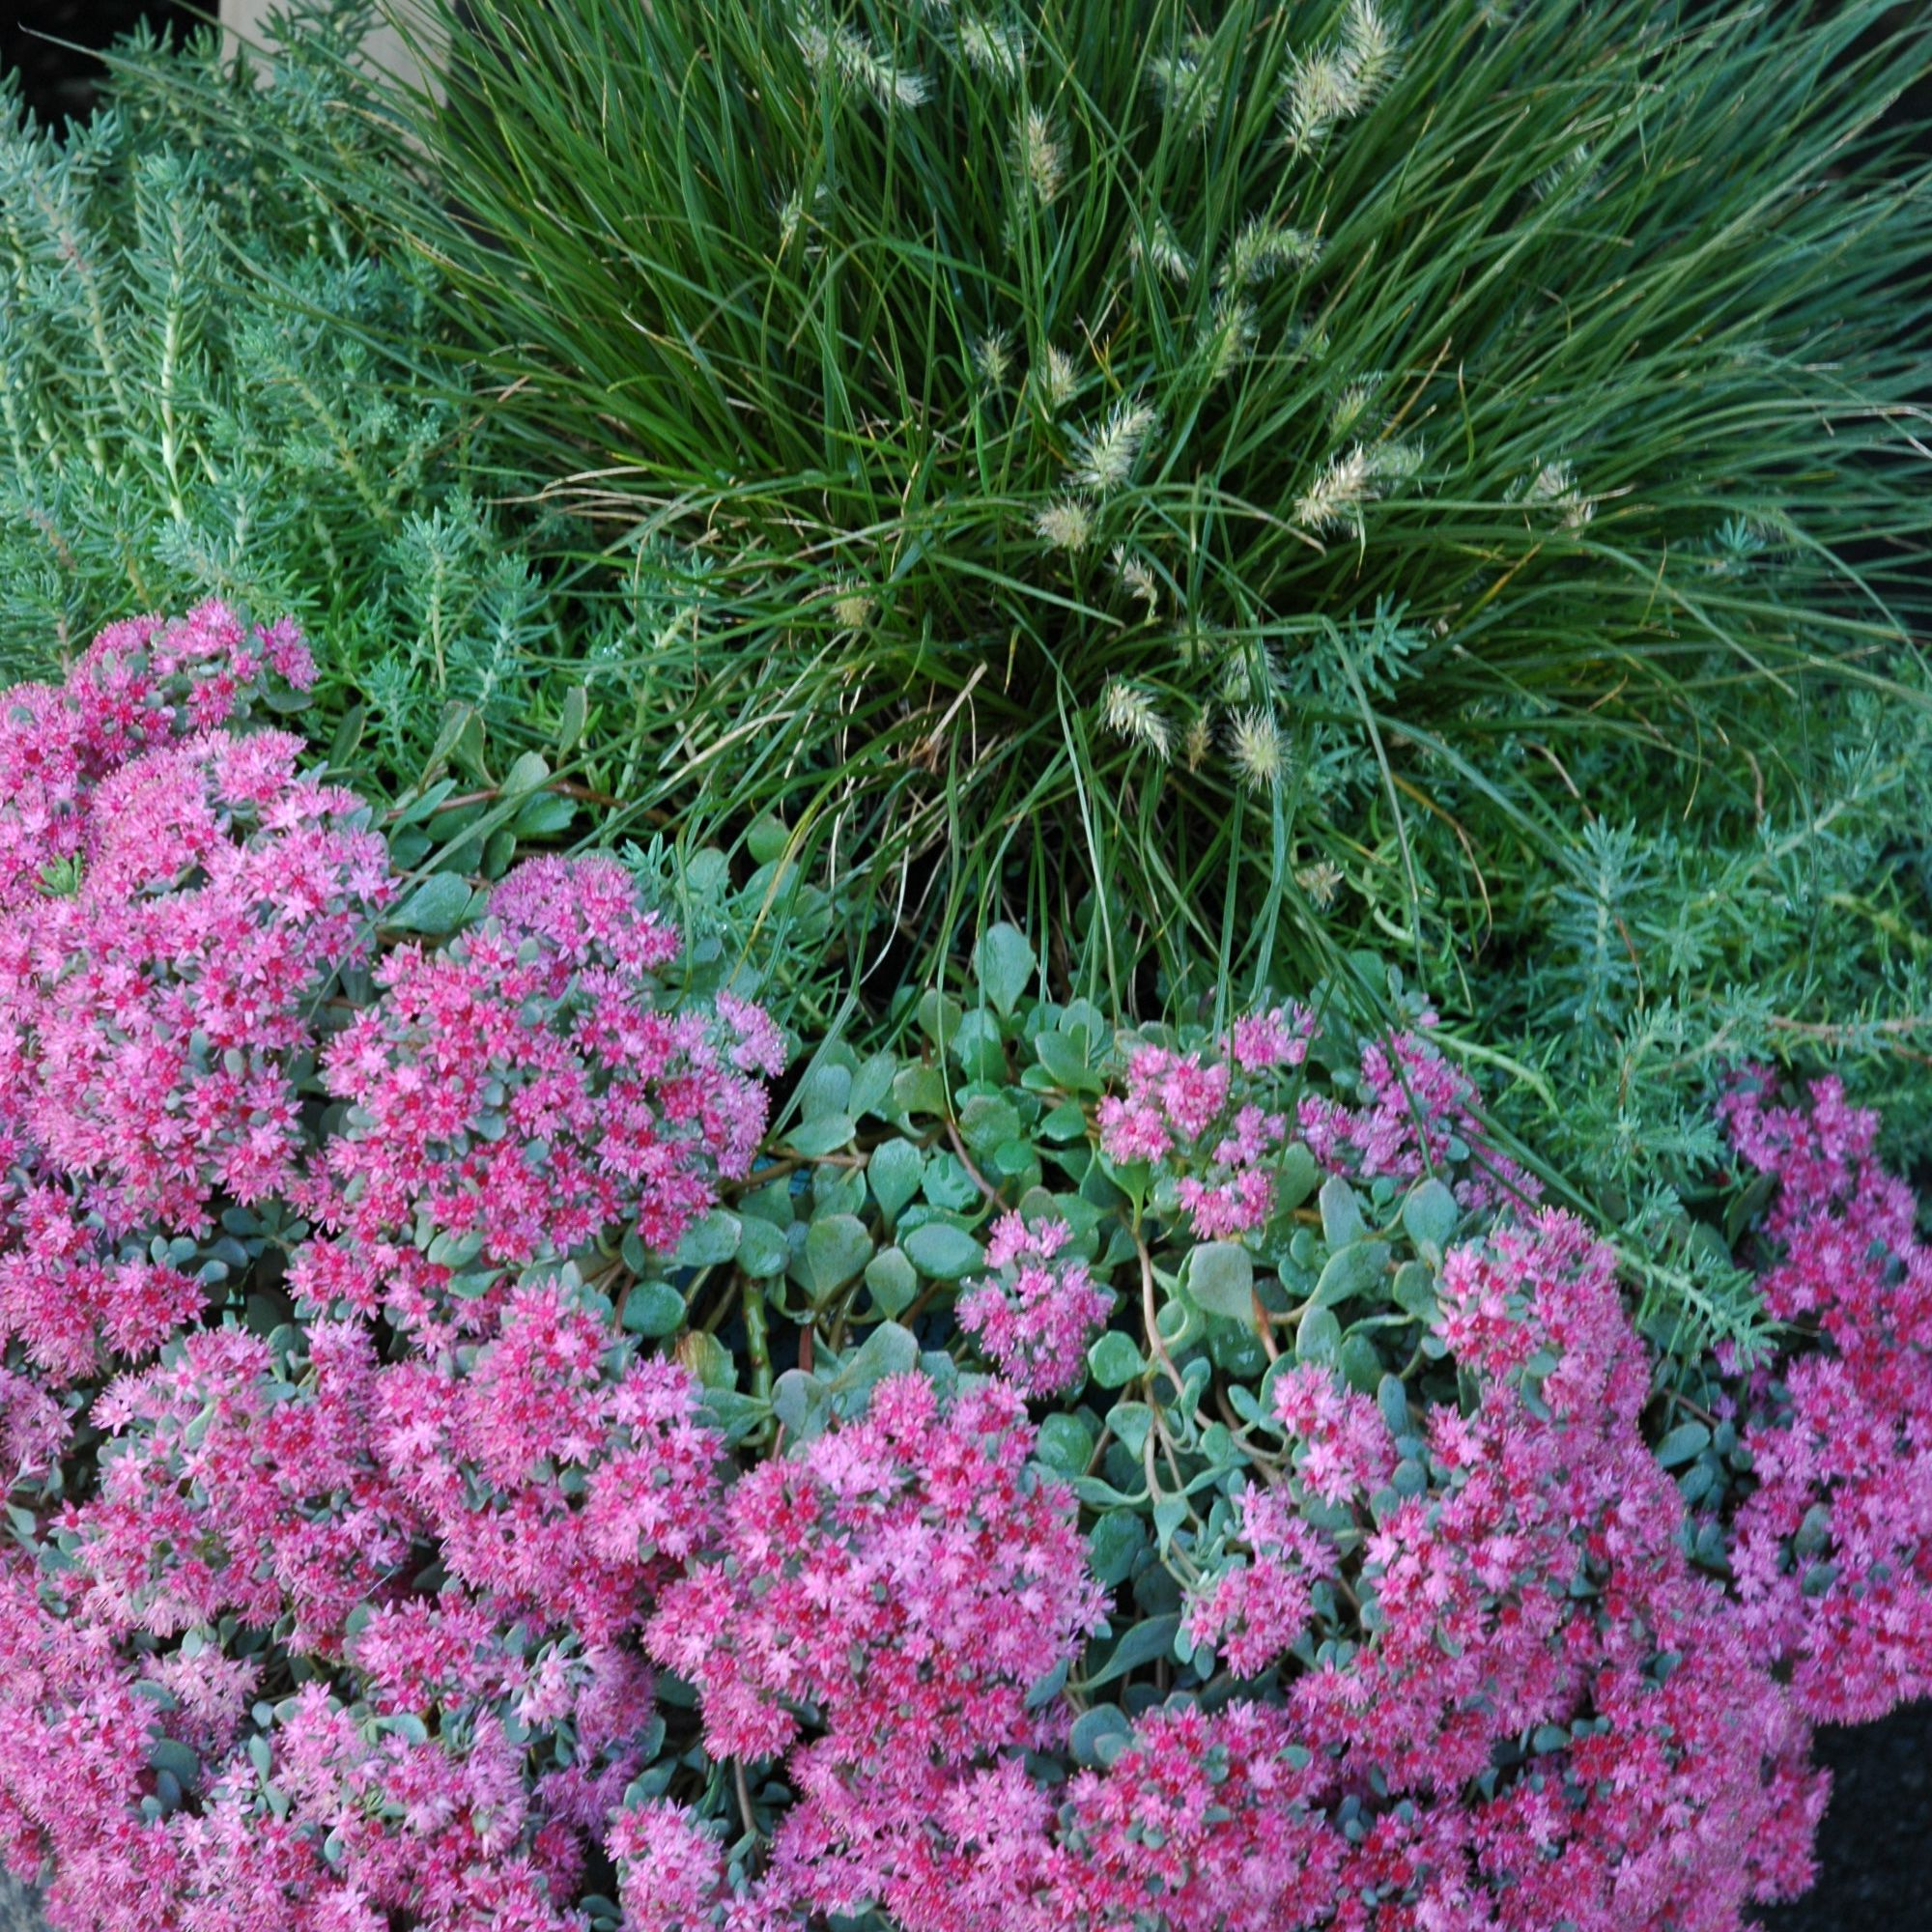 Sedum, grass, and rosemary in a container garden